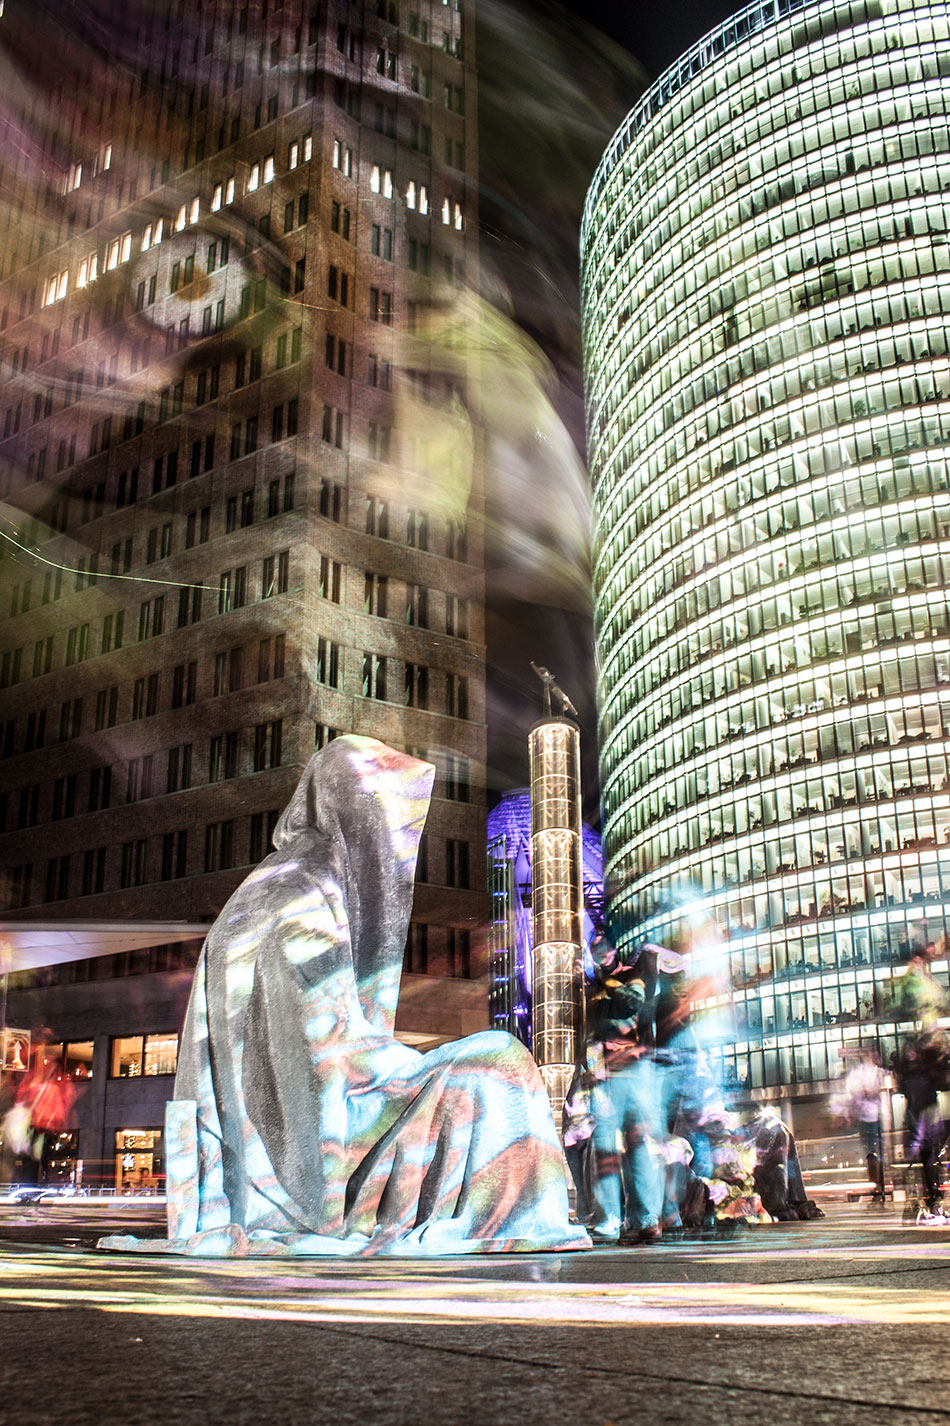 festival-of-lights-berlin-potzdamer-platz-light-art-show-exhibition-lumina-guardians-of-time-manfred-kili-kielnhofer-contemporary-arts-design-sculpture-3211